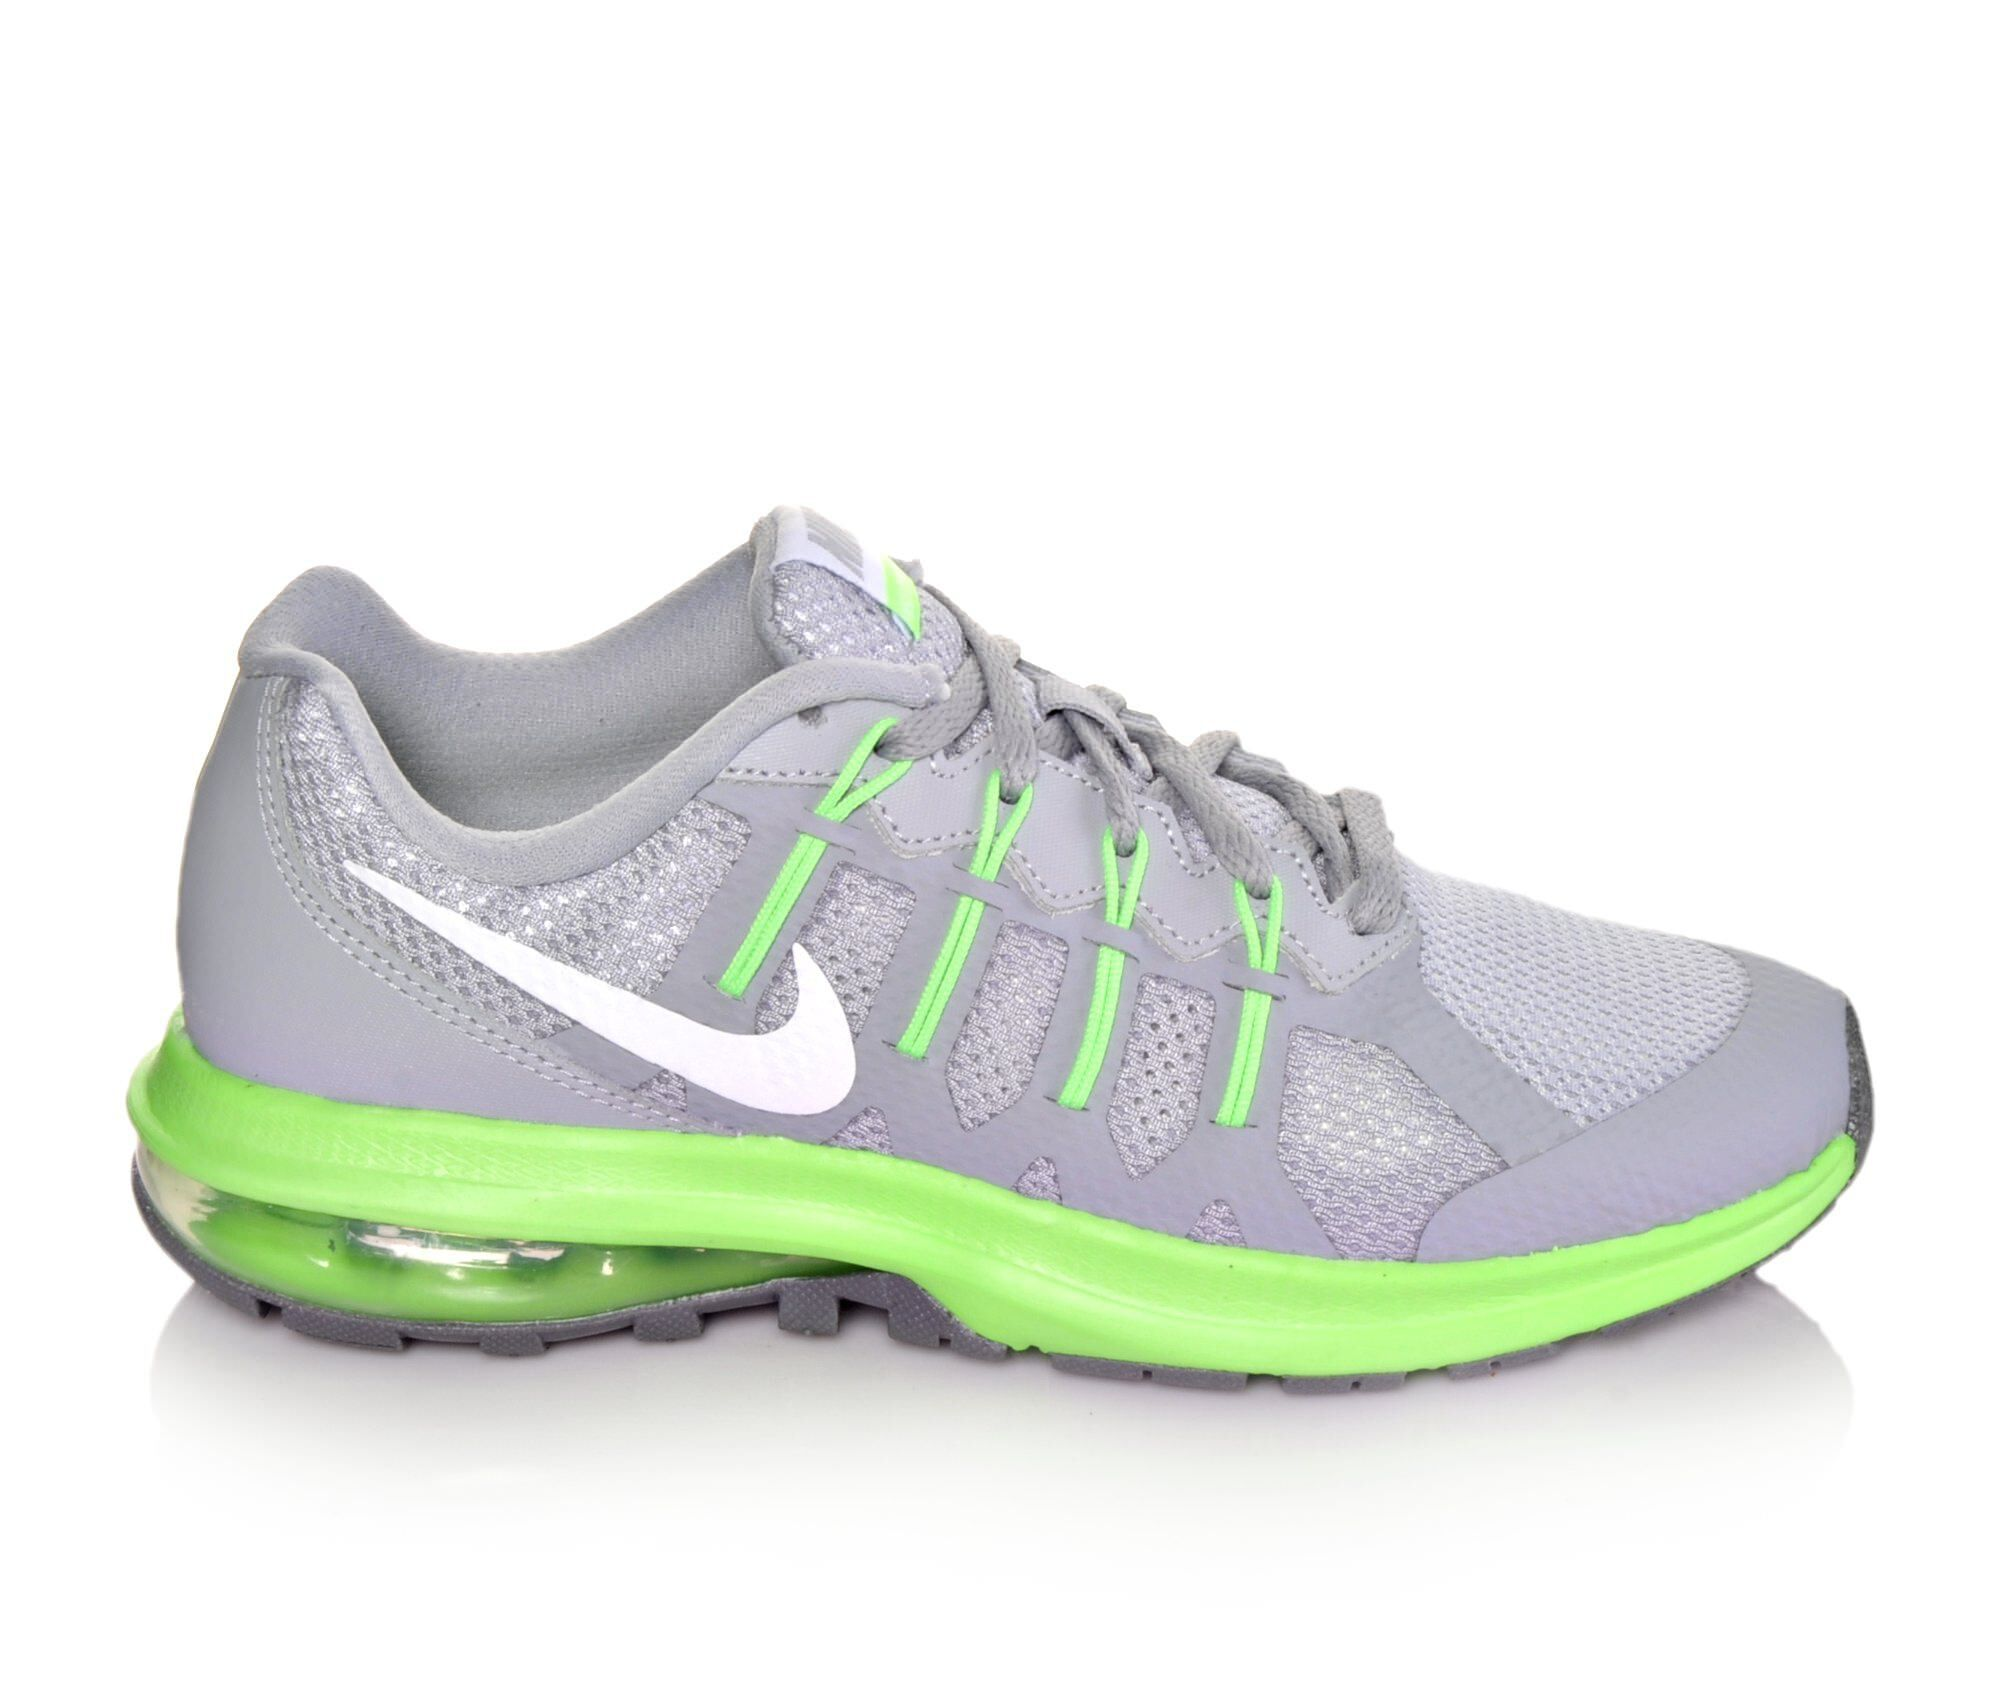 Images. Boys' Nike Air Max Dynasty 3.5-7 Running Shoes